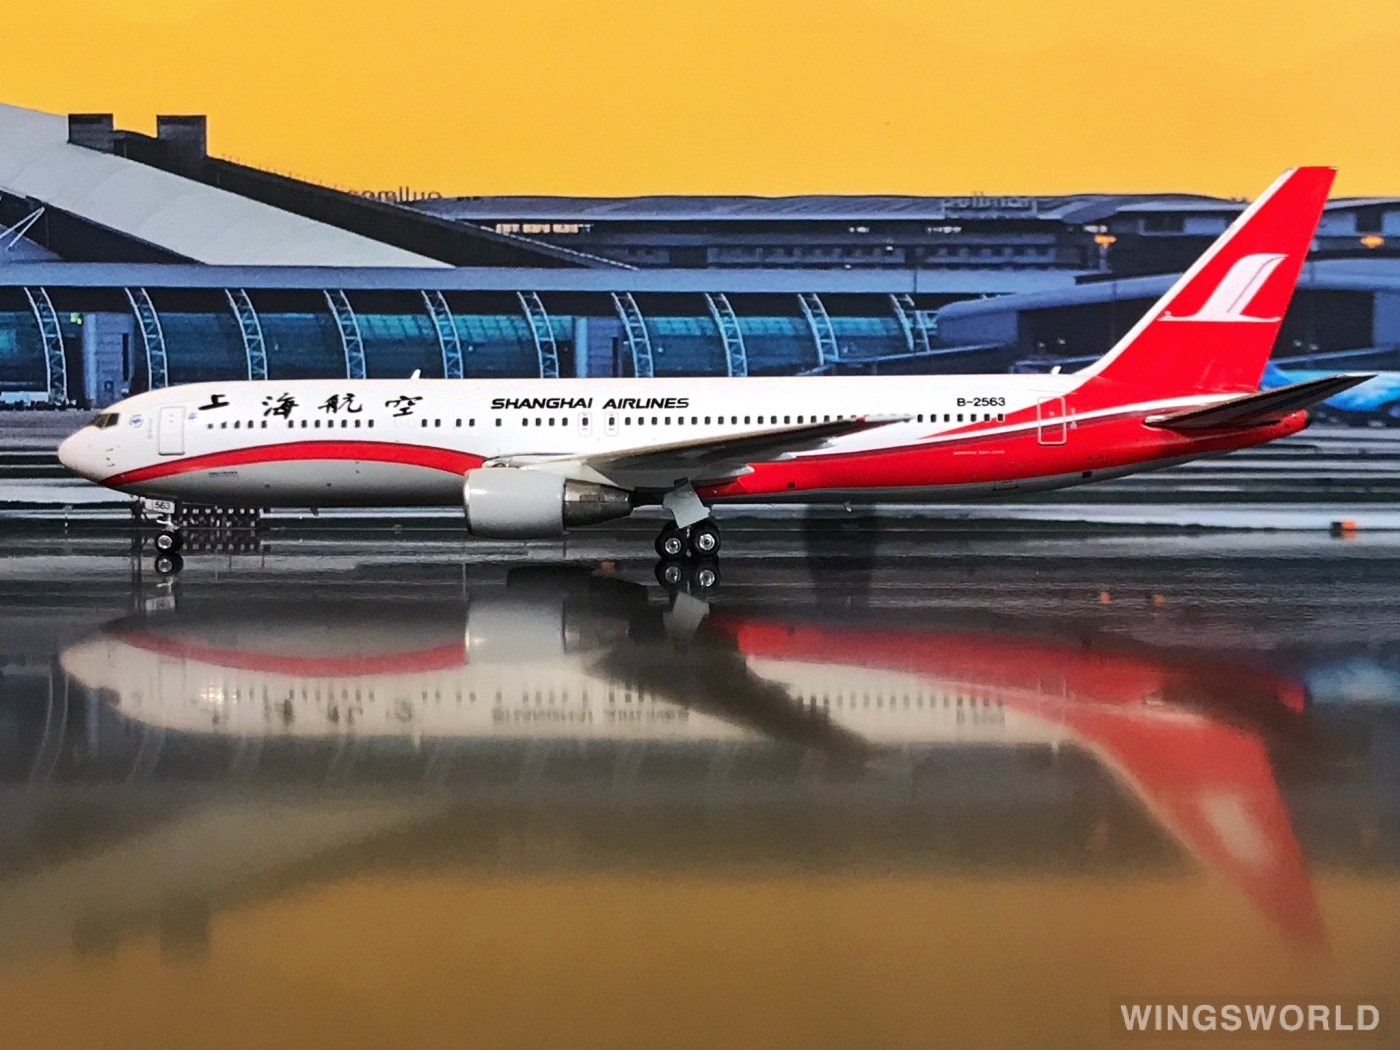 Phoenix 1:400 PH11086 Shanghai Airlines 上海航空 Boeing 767-300 B-2563